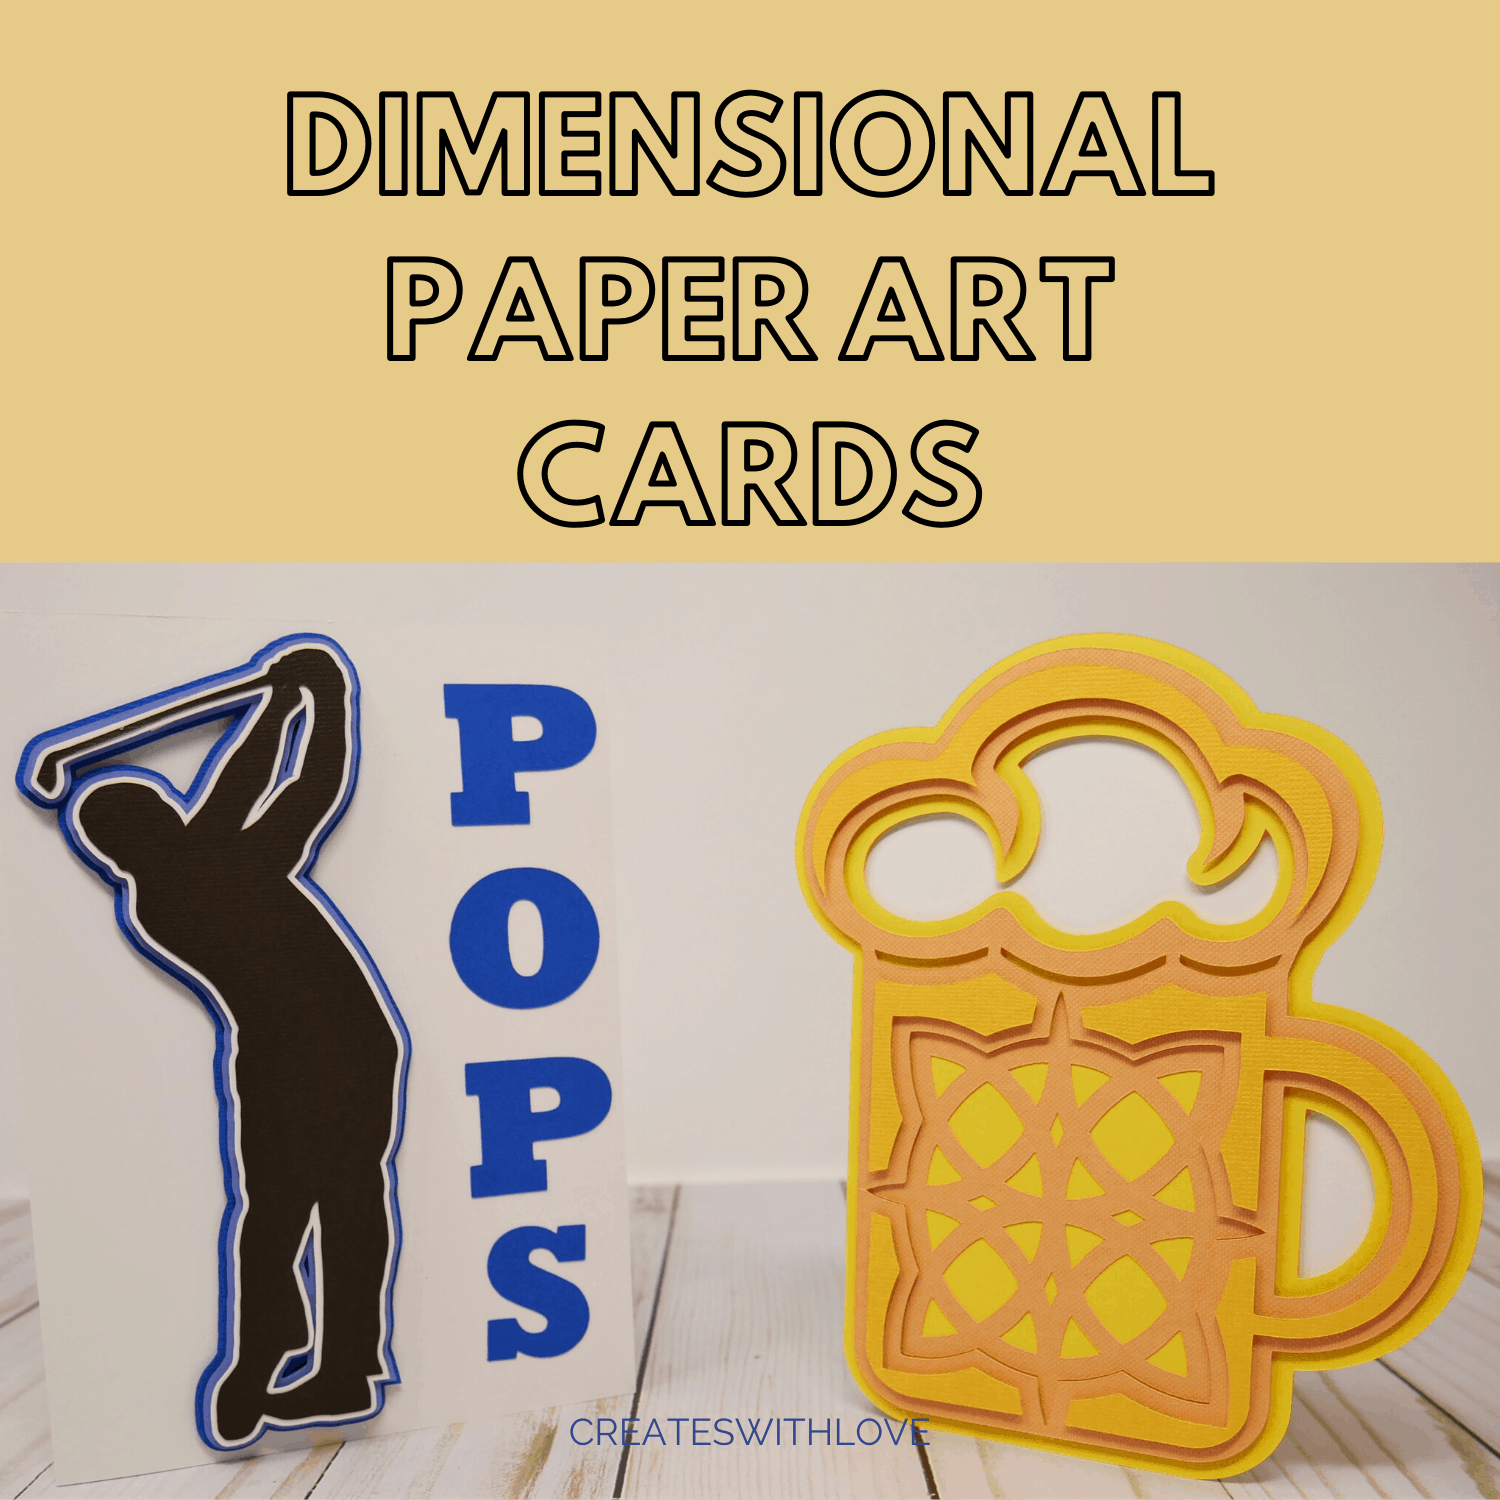 Dimensional Paper Art Cards